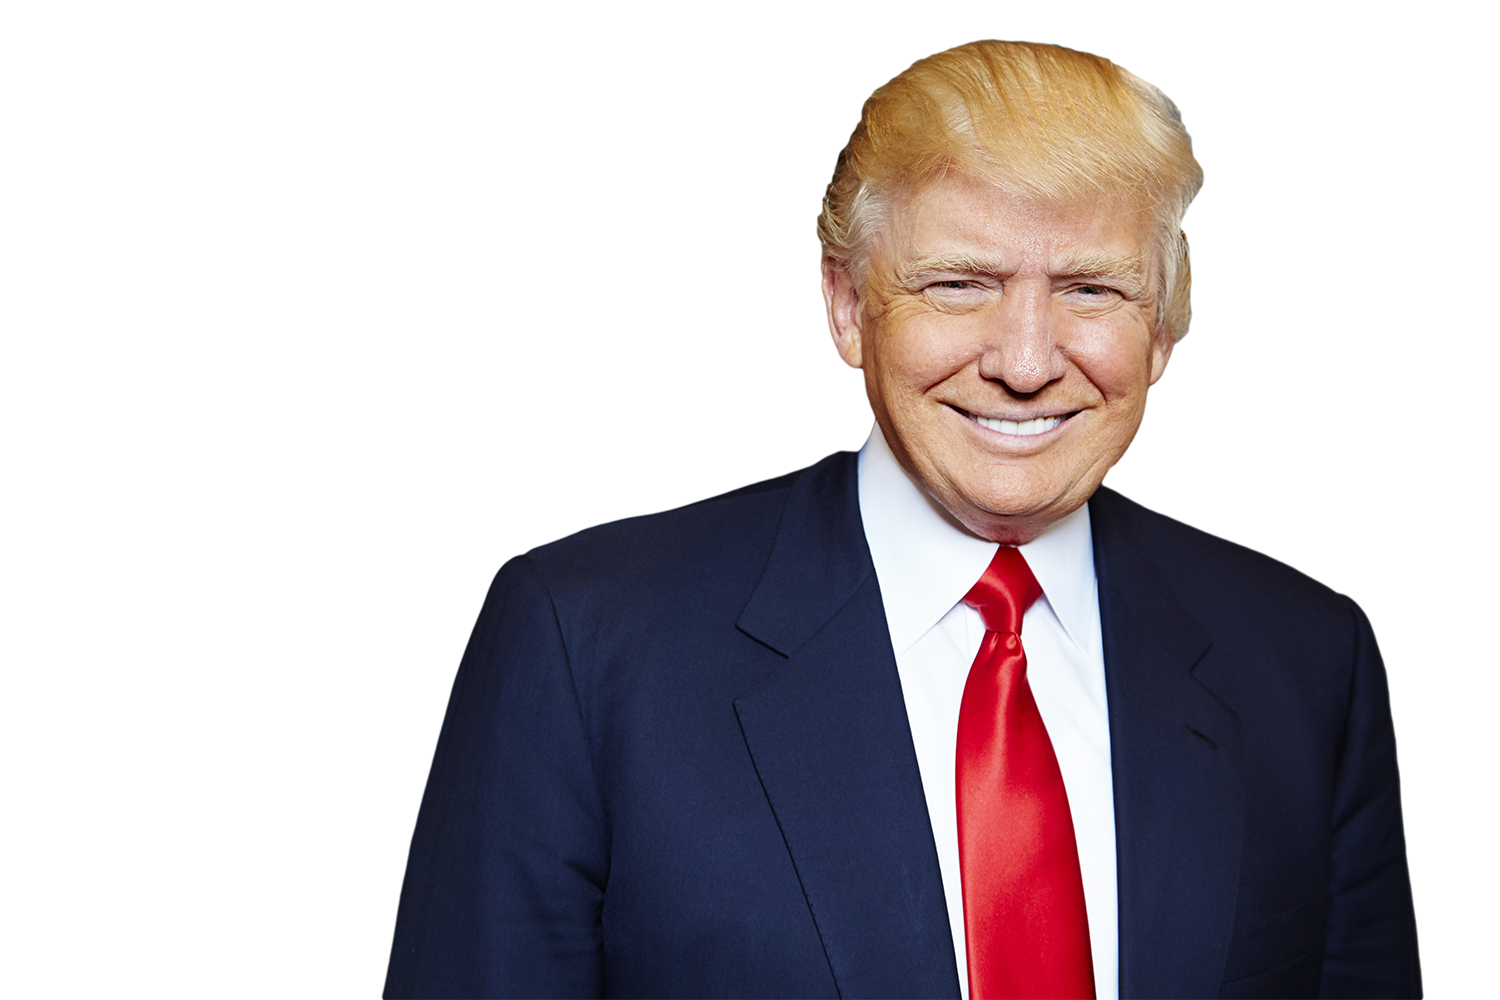 donald trump png image icons and png backgrounds #18769